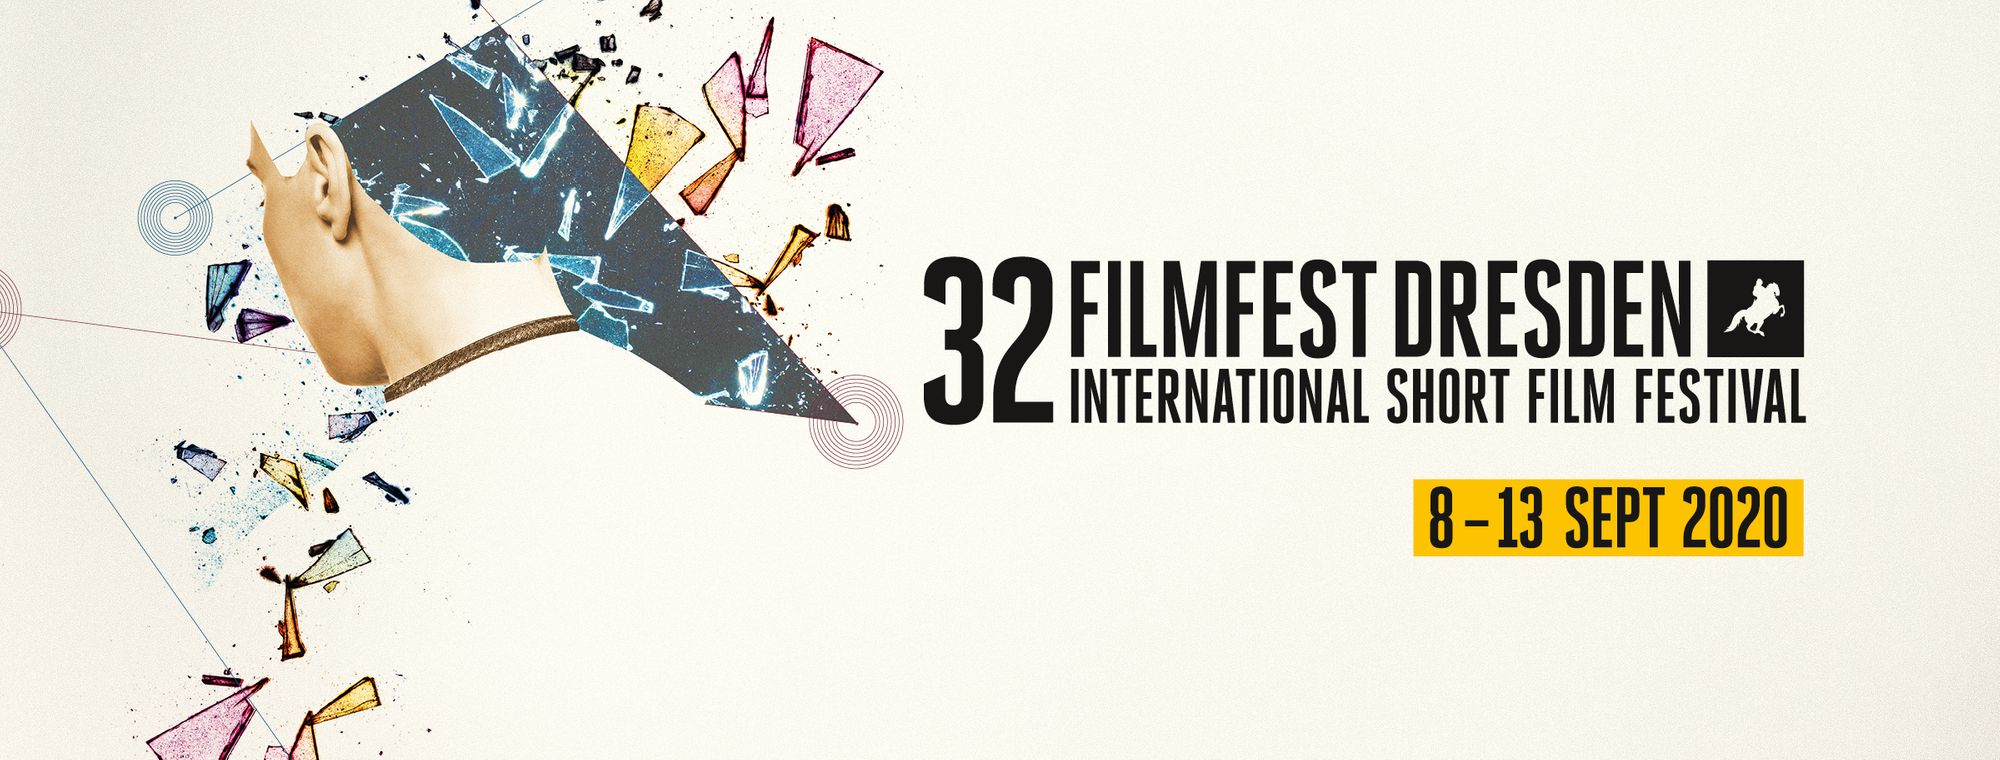 32. Filmfest Dresden - International Short Film Festival: Tag 1